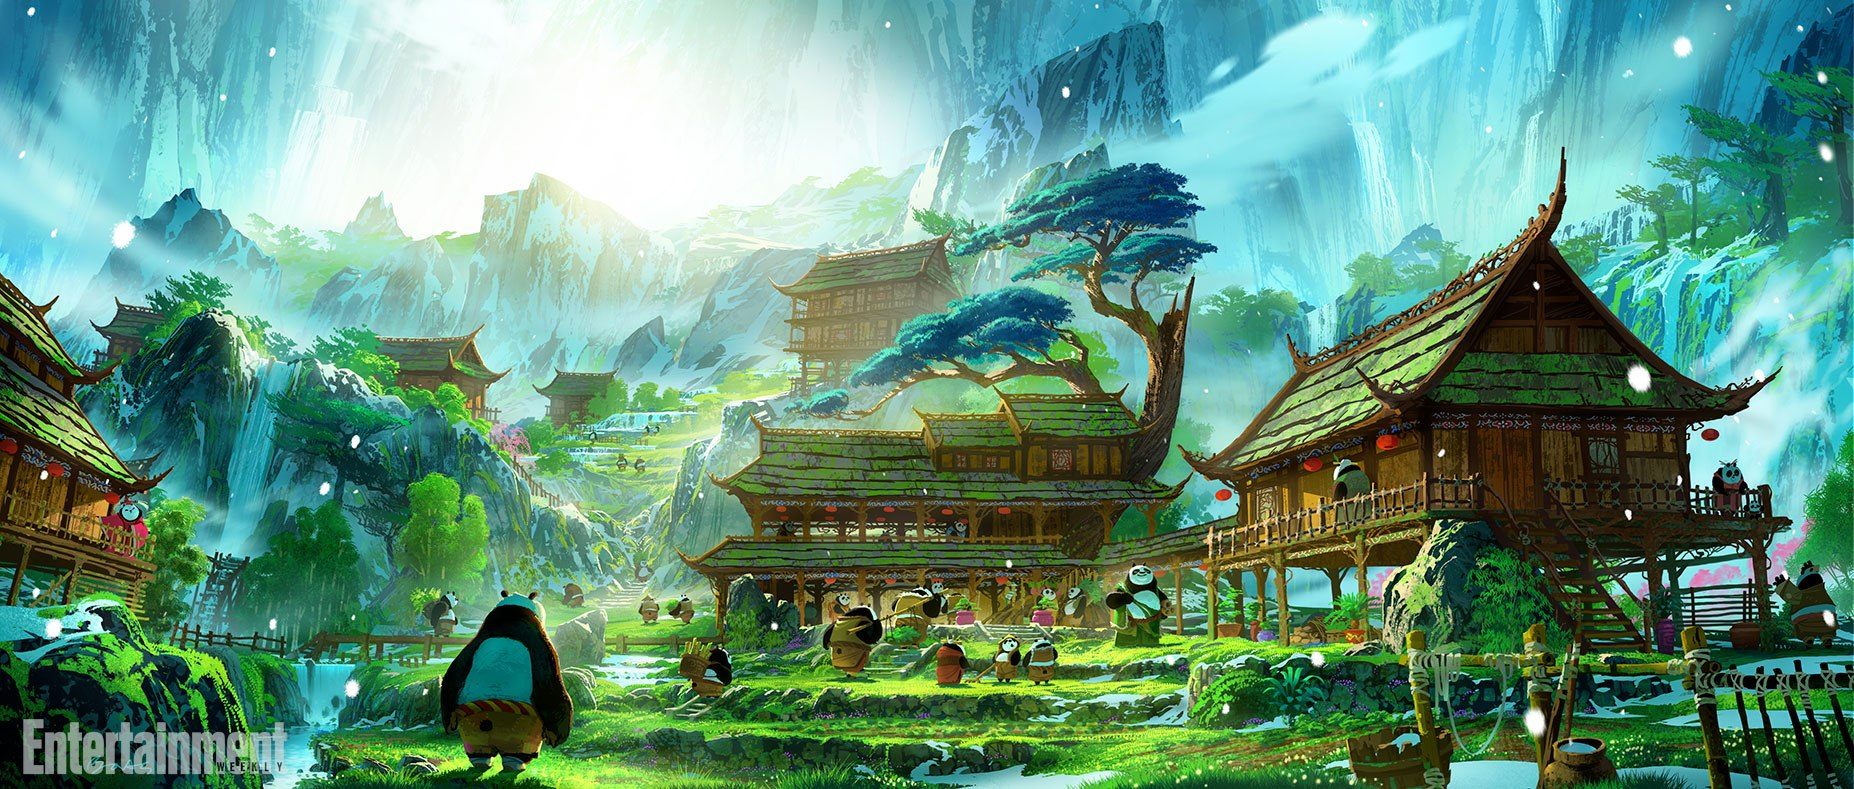 Look Dreamworks Animation Releases Kung Fu Panda 3